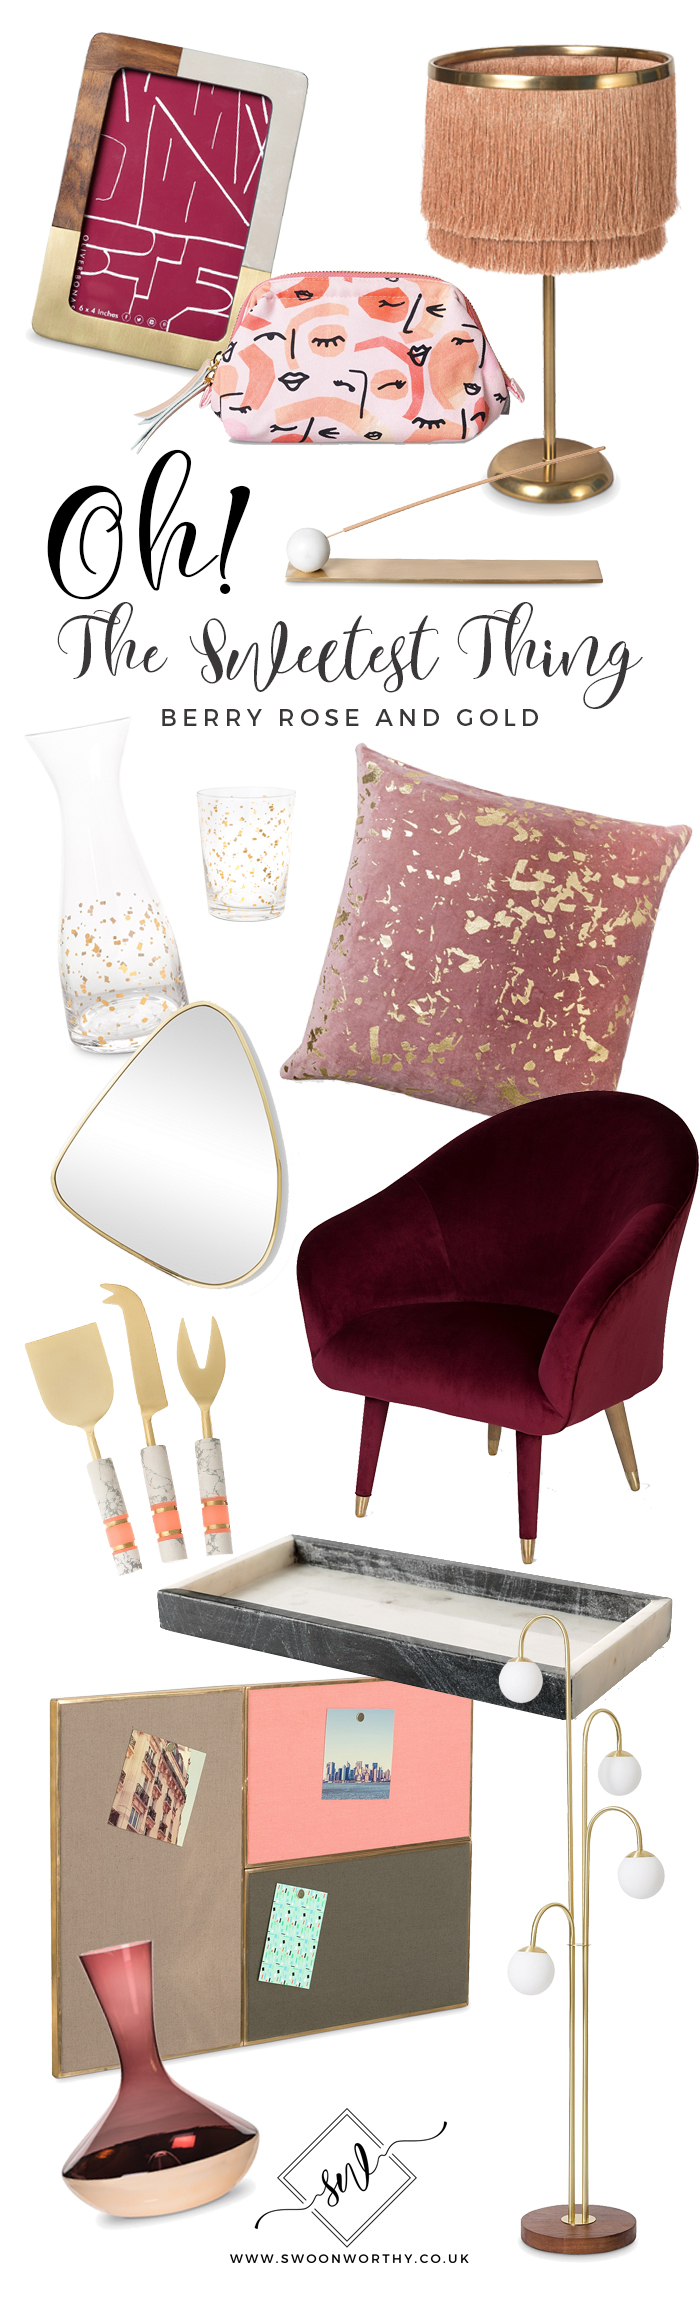 Oliver Bonas Shopping Roundup Buying Guide in Berry Blush and Gold